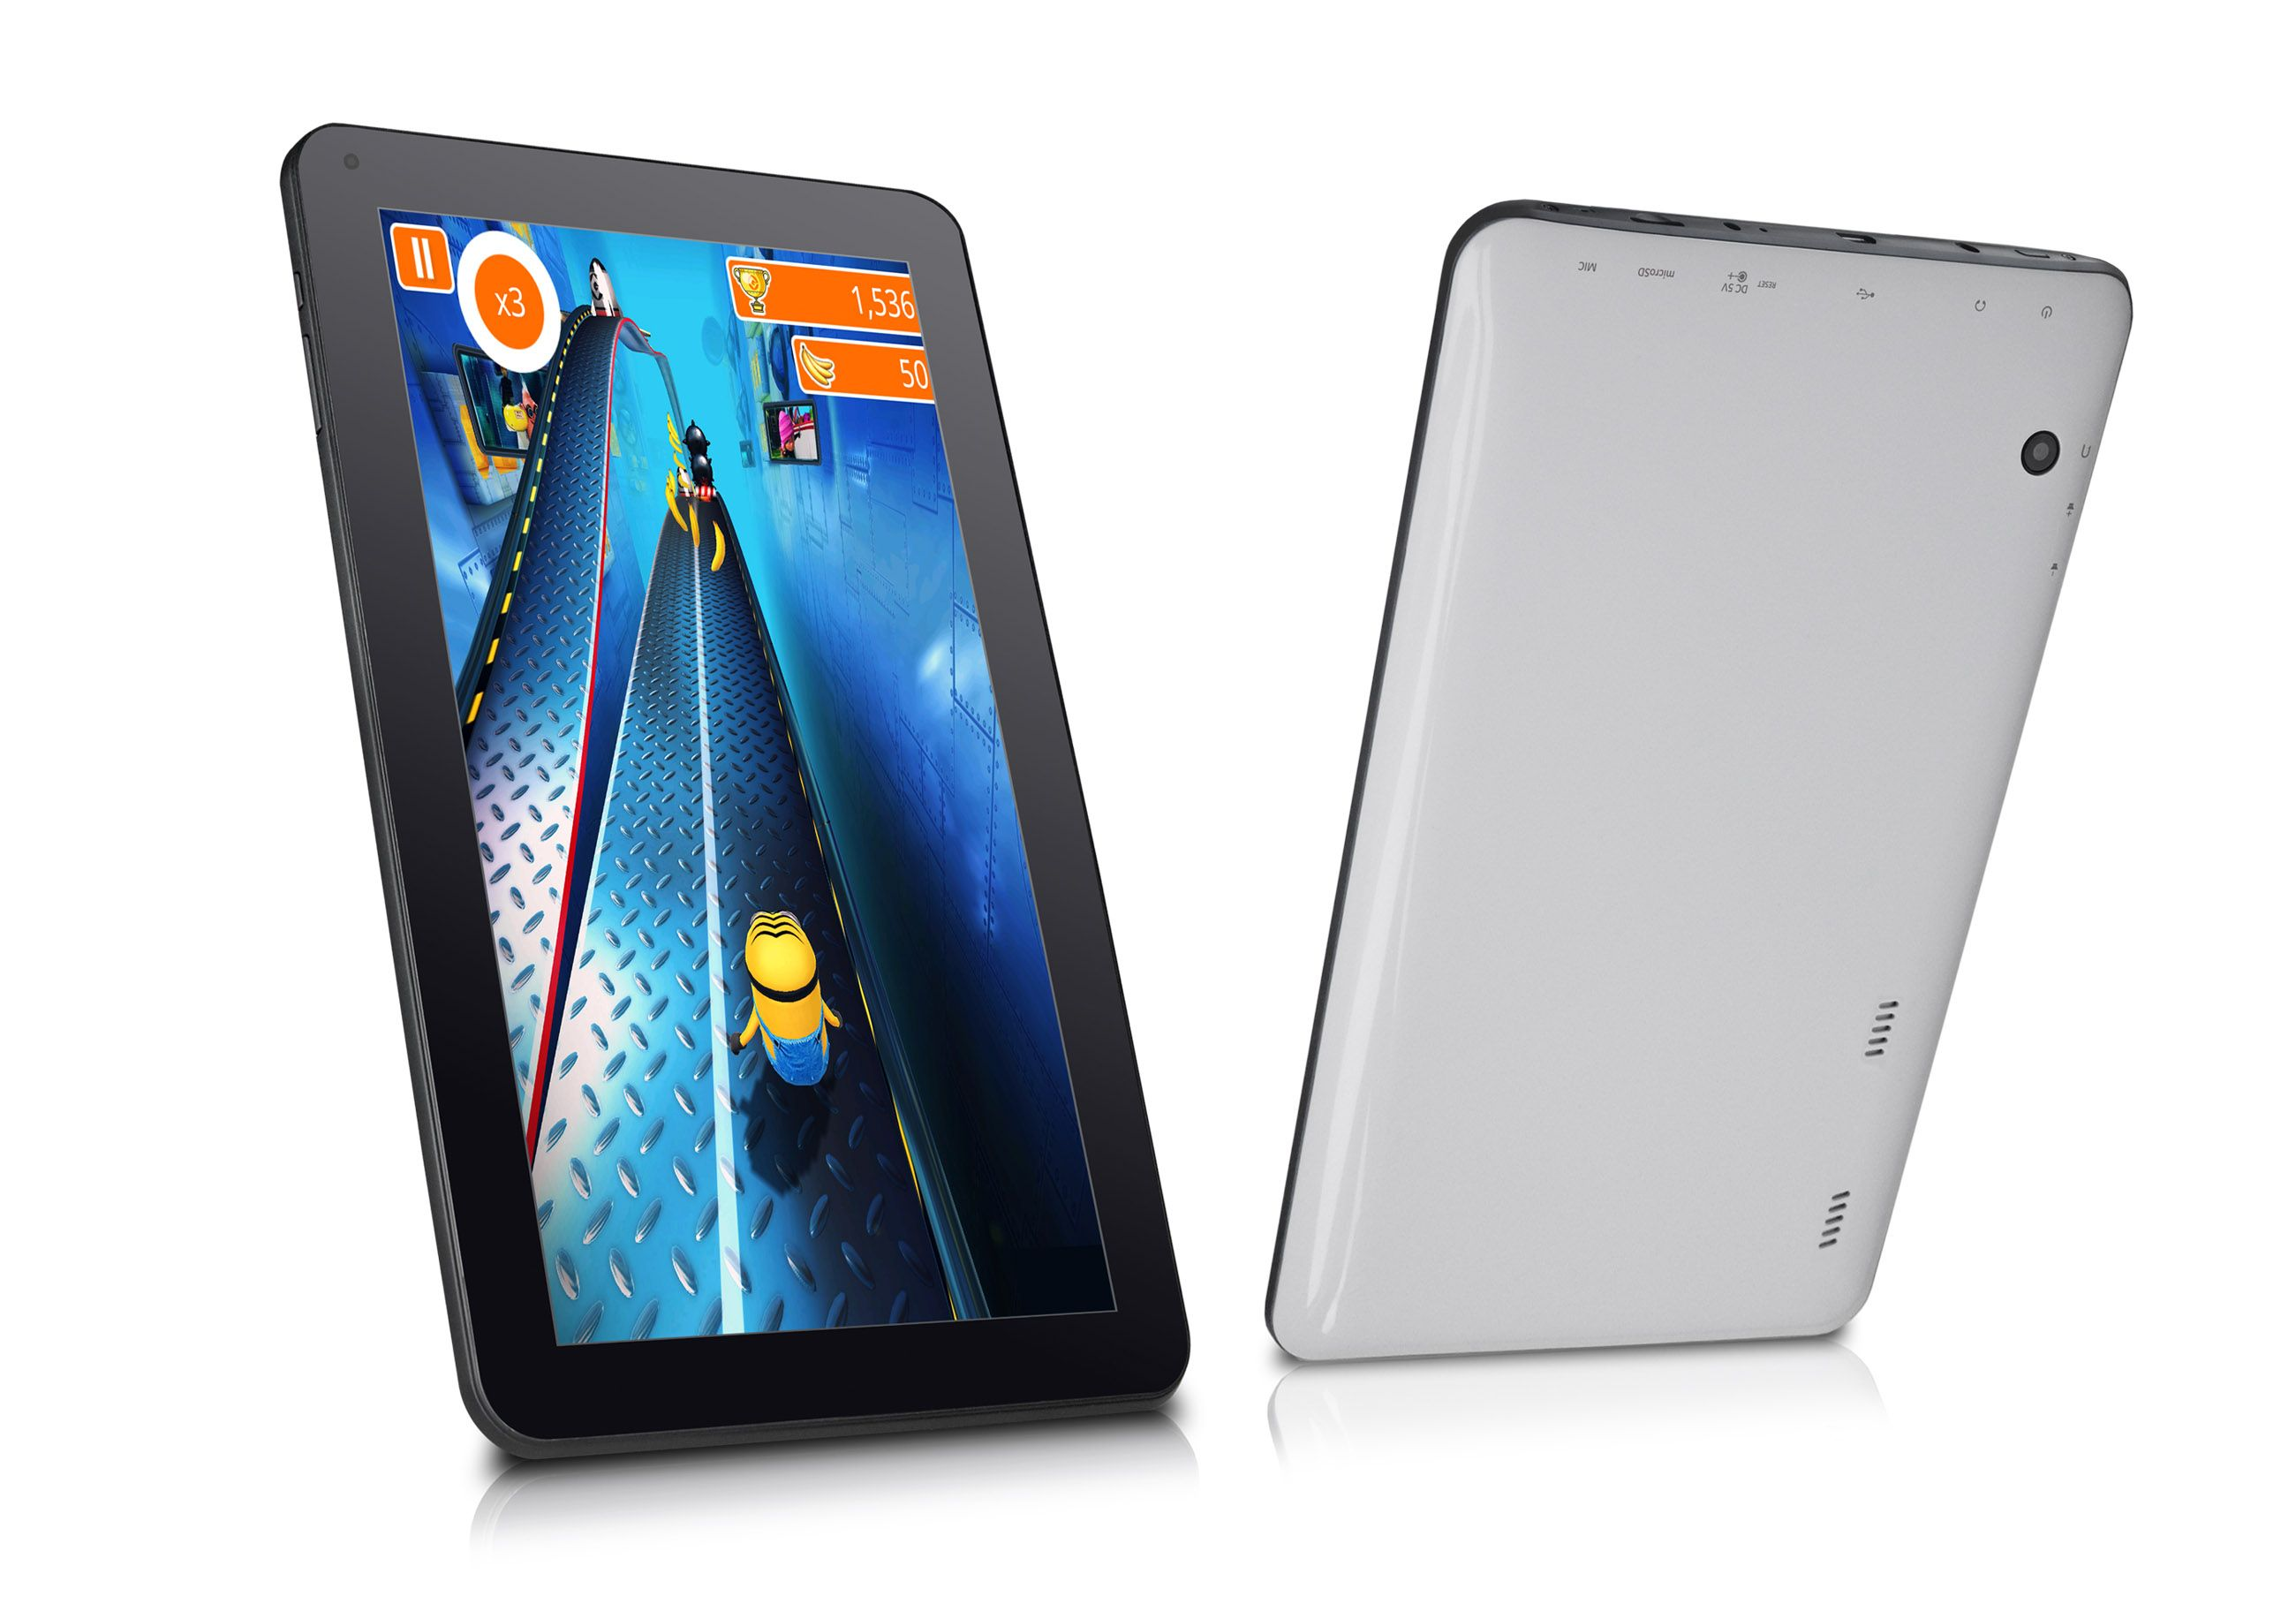 SALE ALERT! Sungale's 10 Inch Tablet is going on sale! It